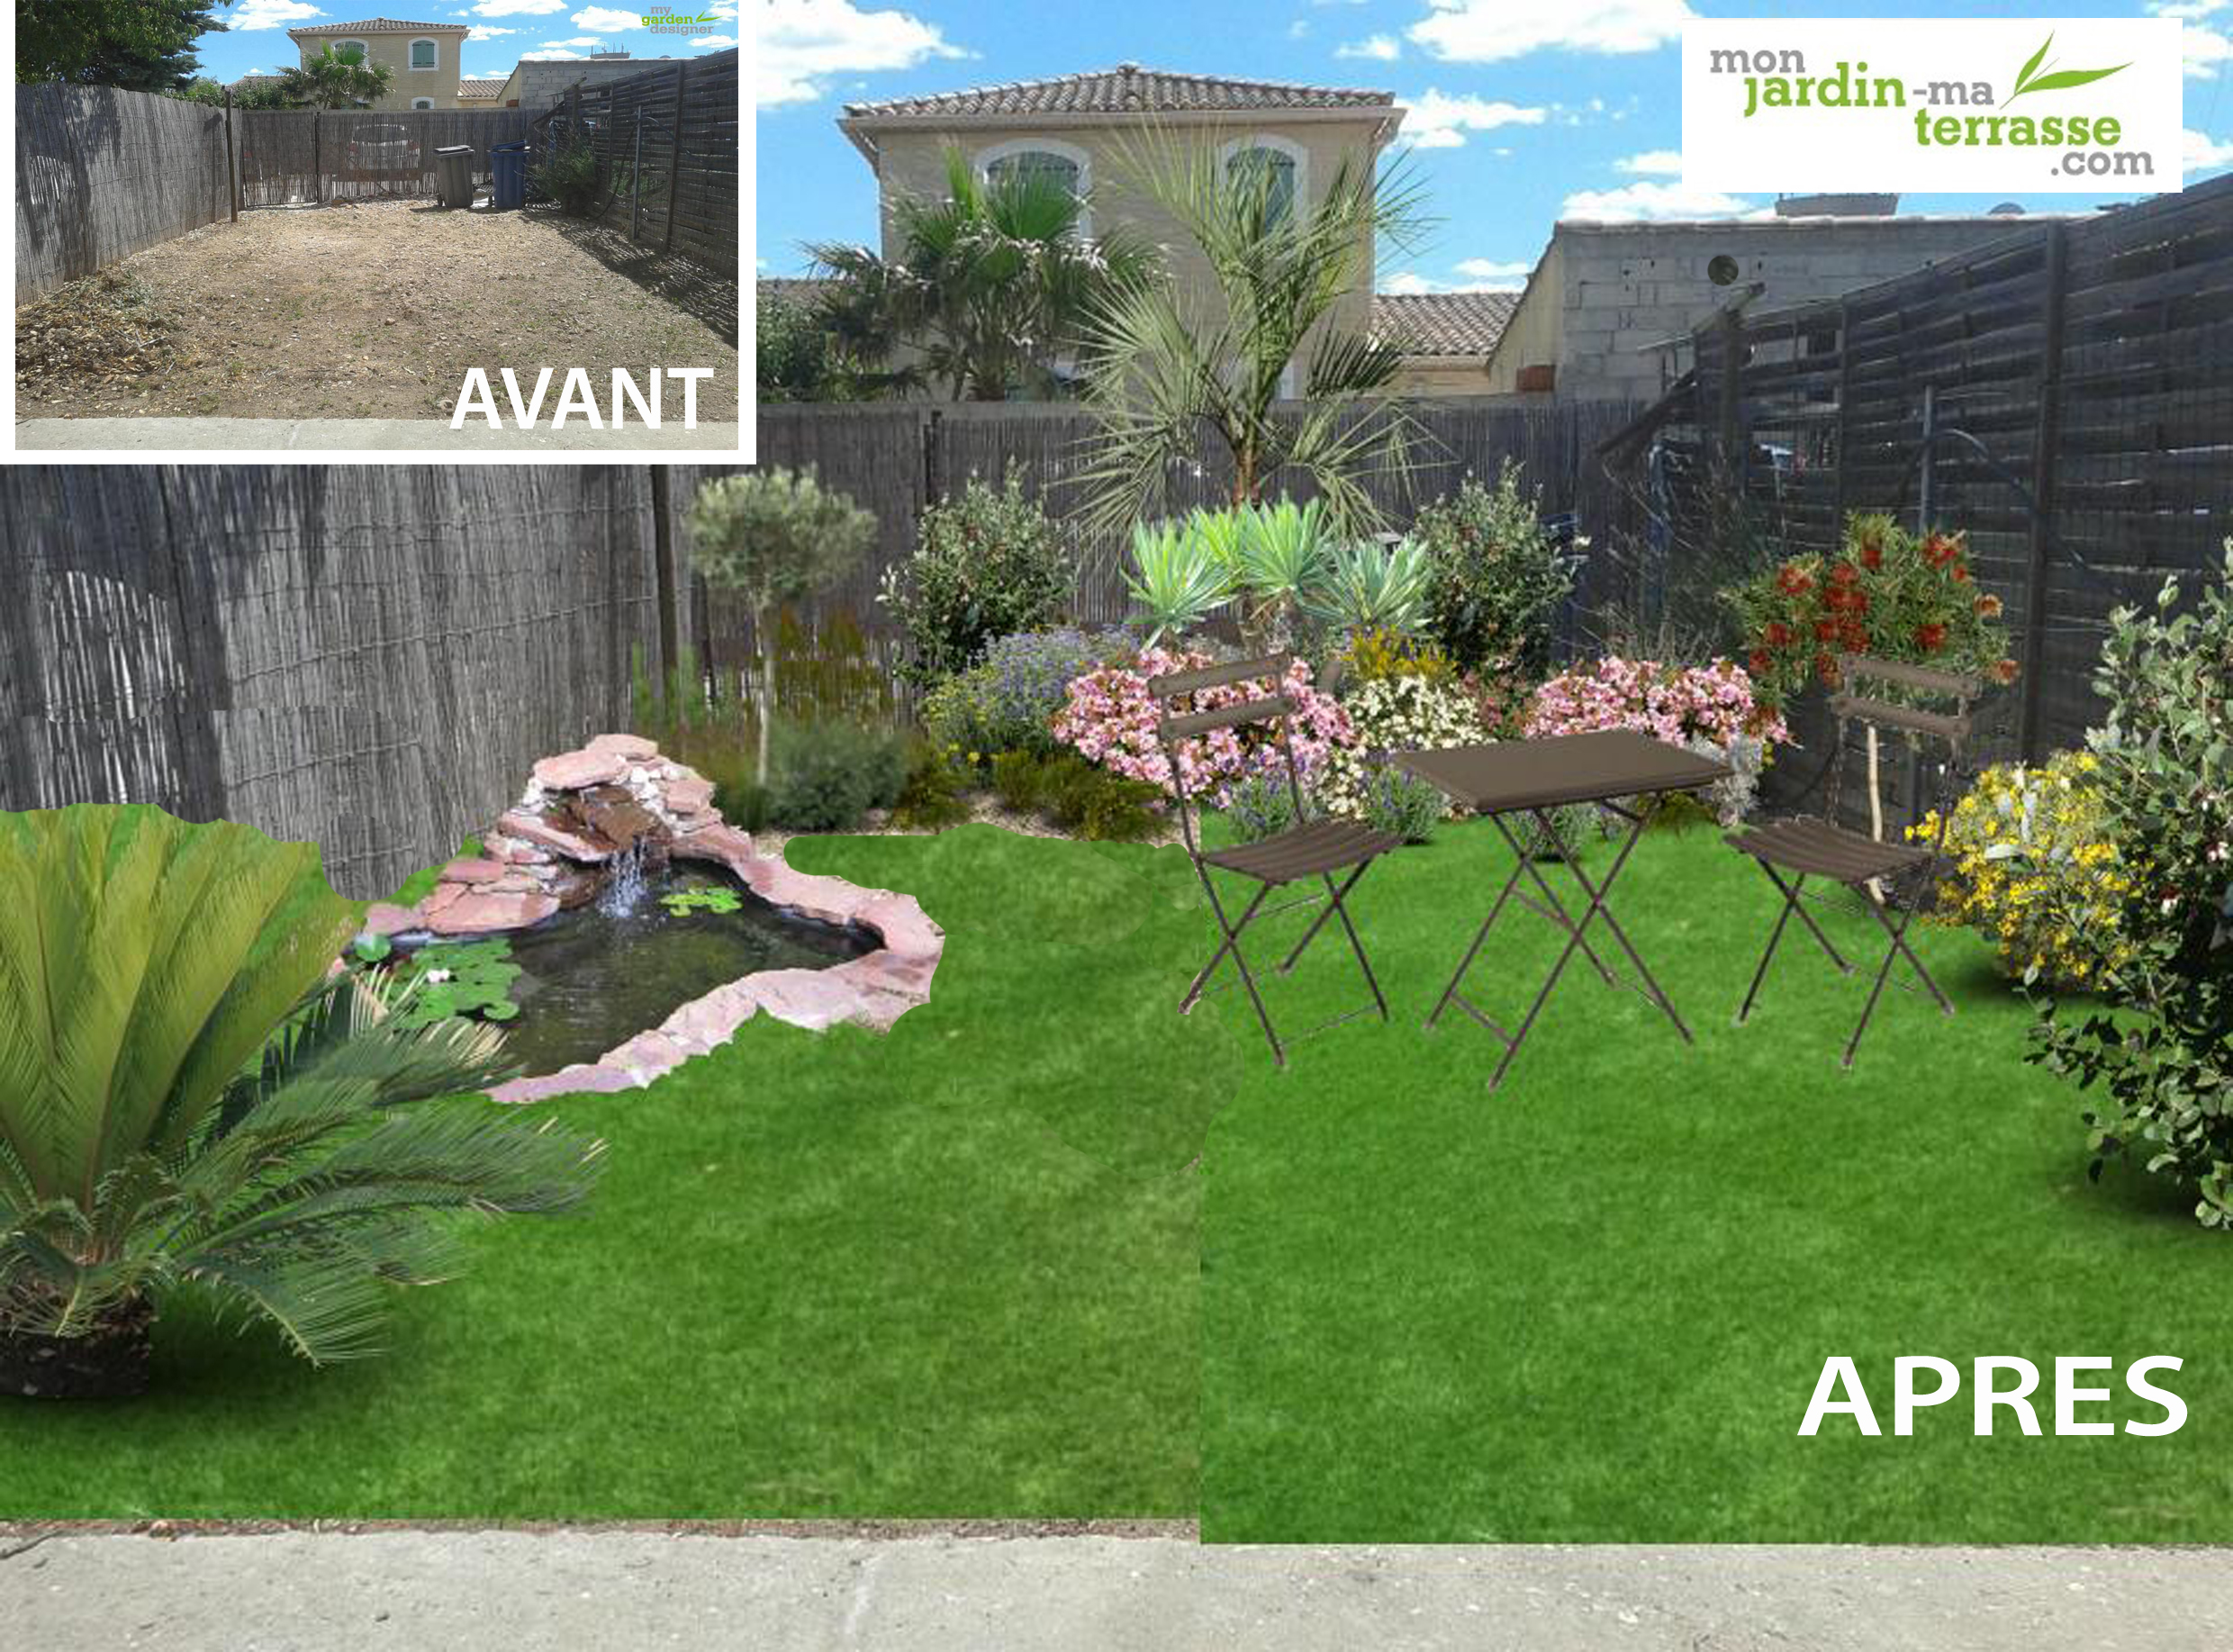 Id e d am nagement d un petit jardin monjardin for Idee de decoration petit jardin